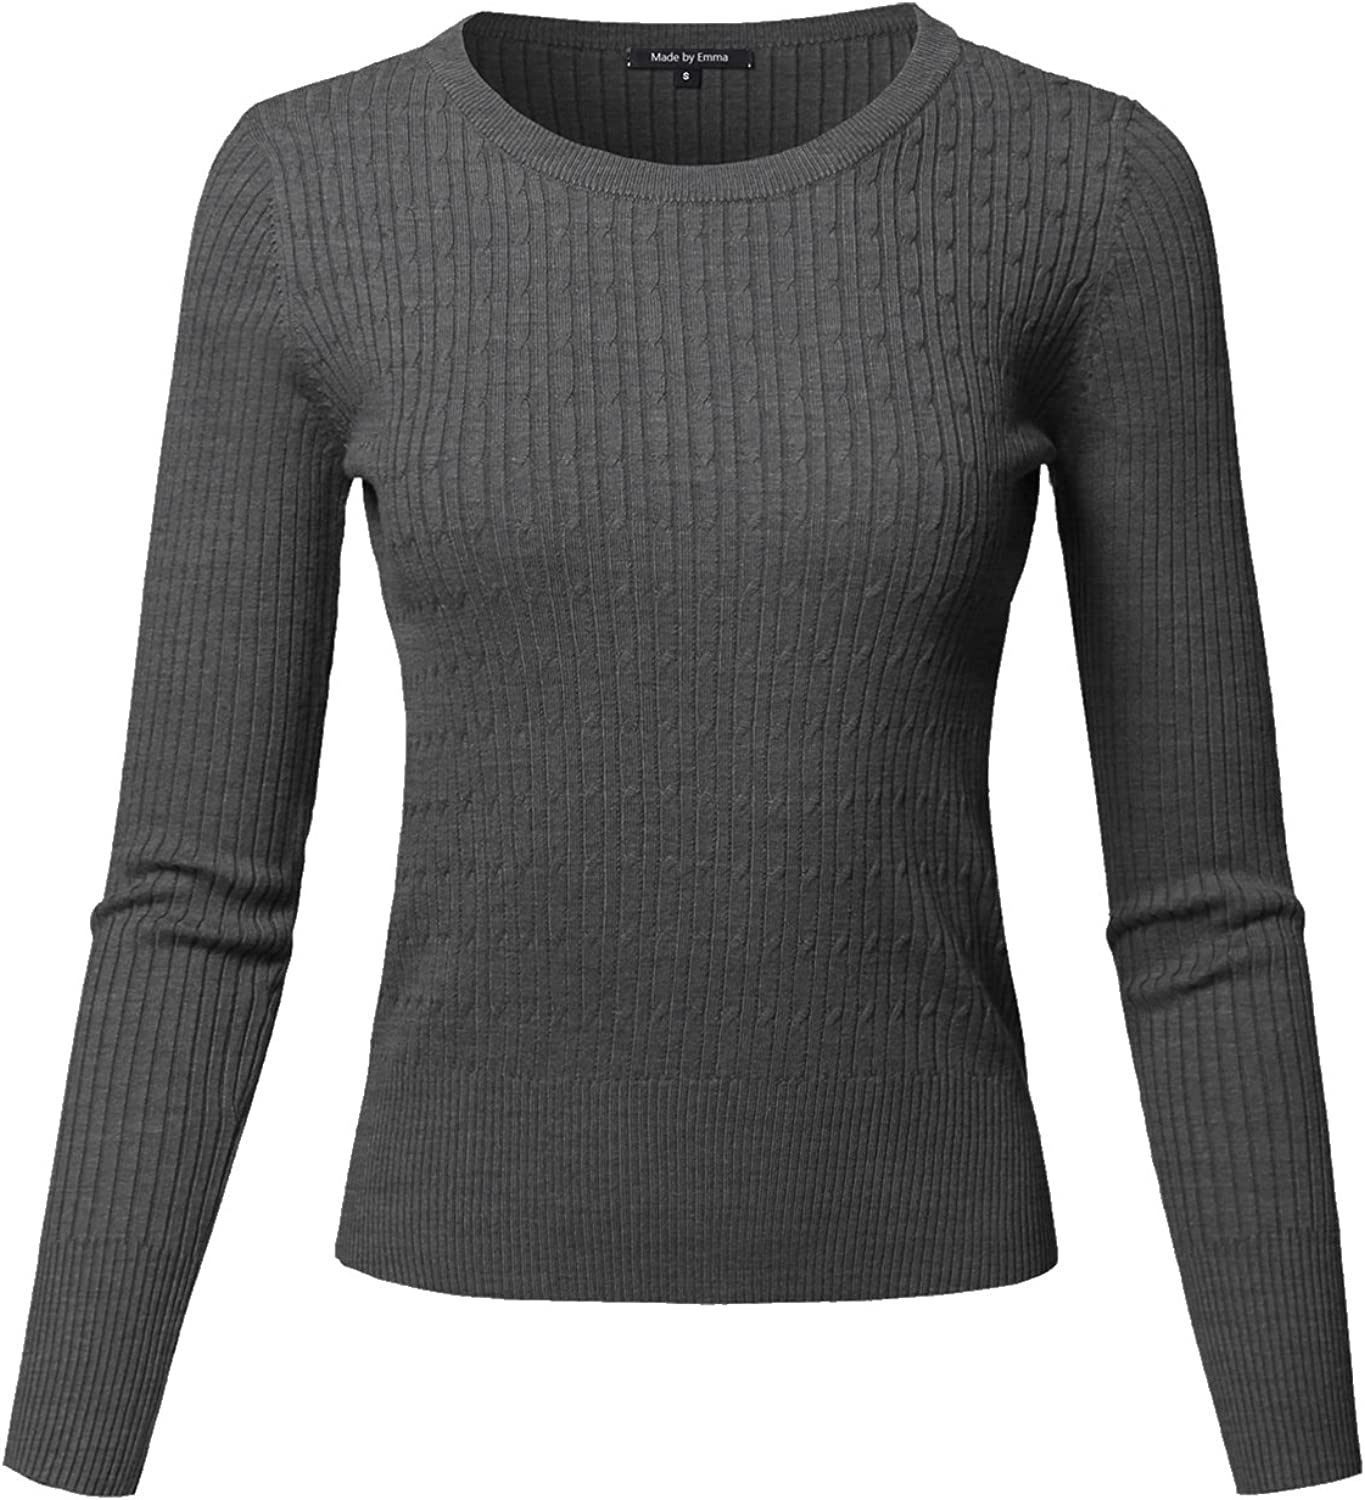 Made by Emma Women's Basic Solid Classic Long Sleeve Cable Knit Sweater